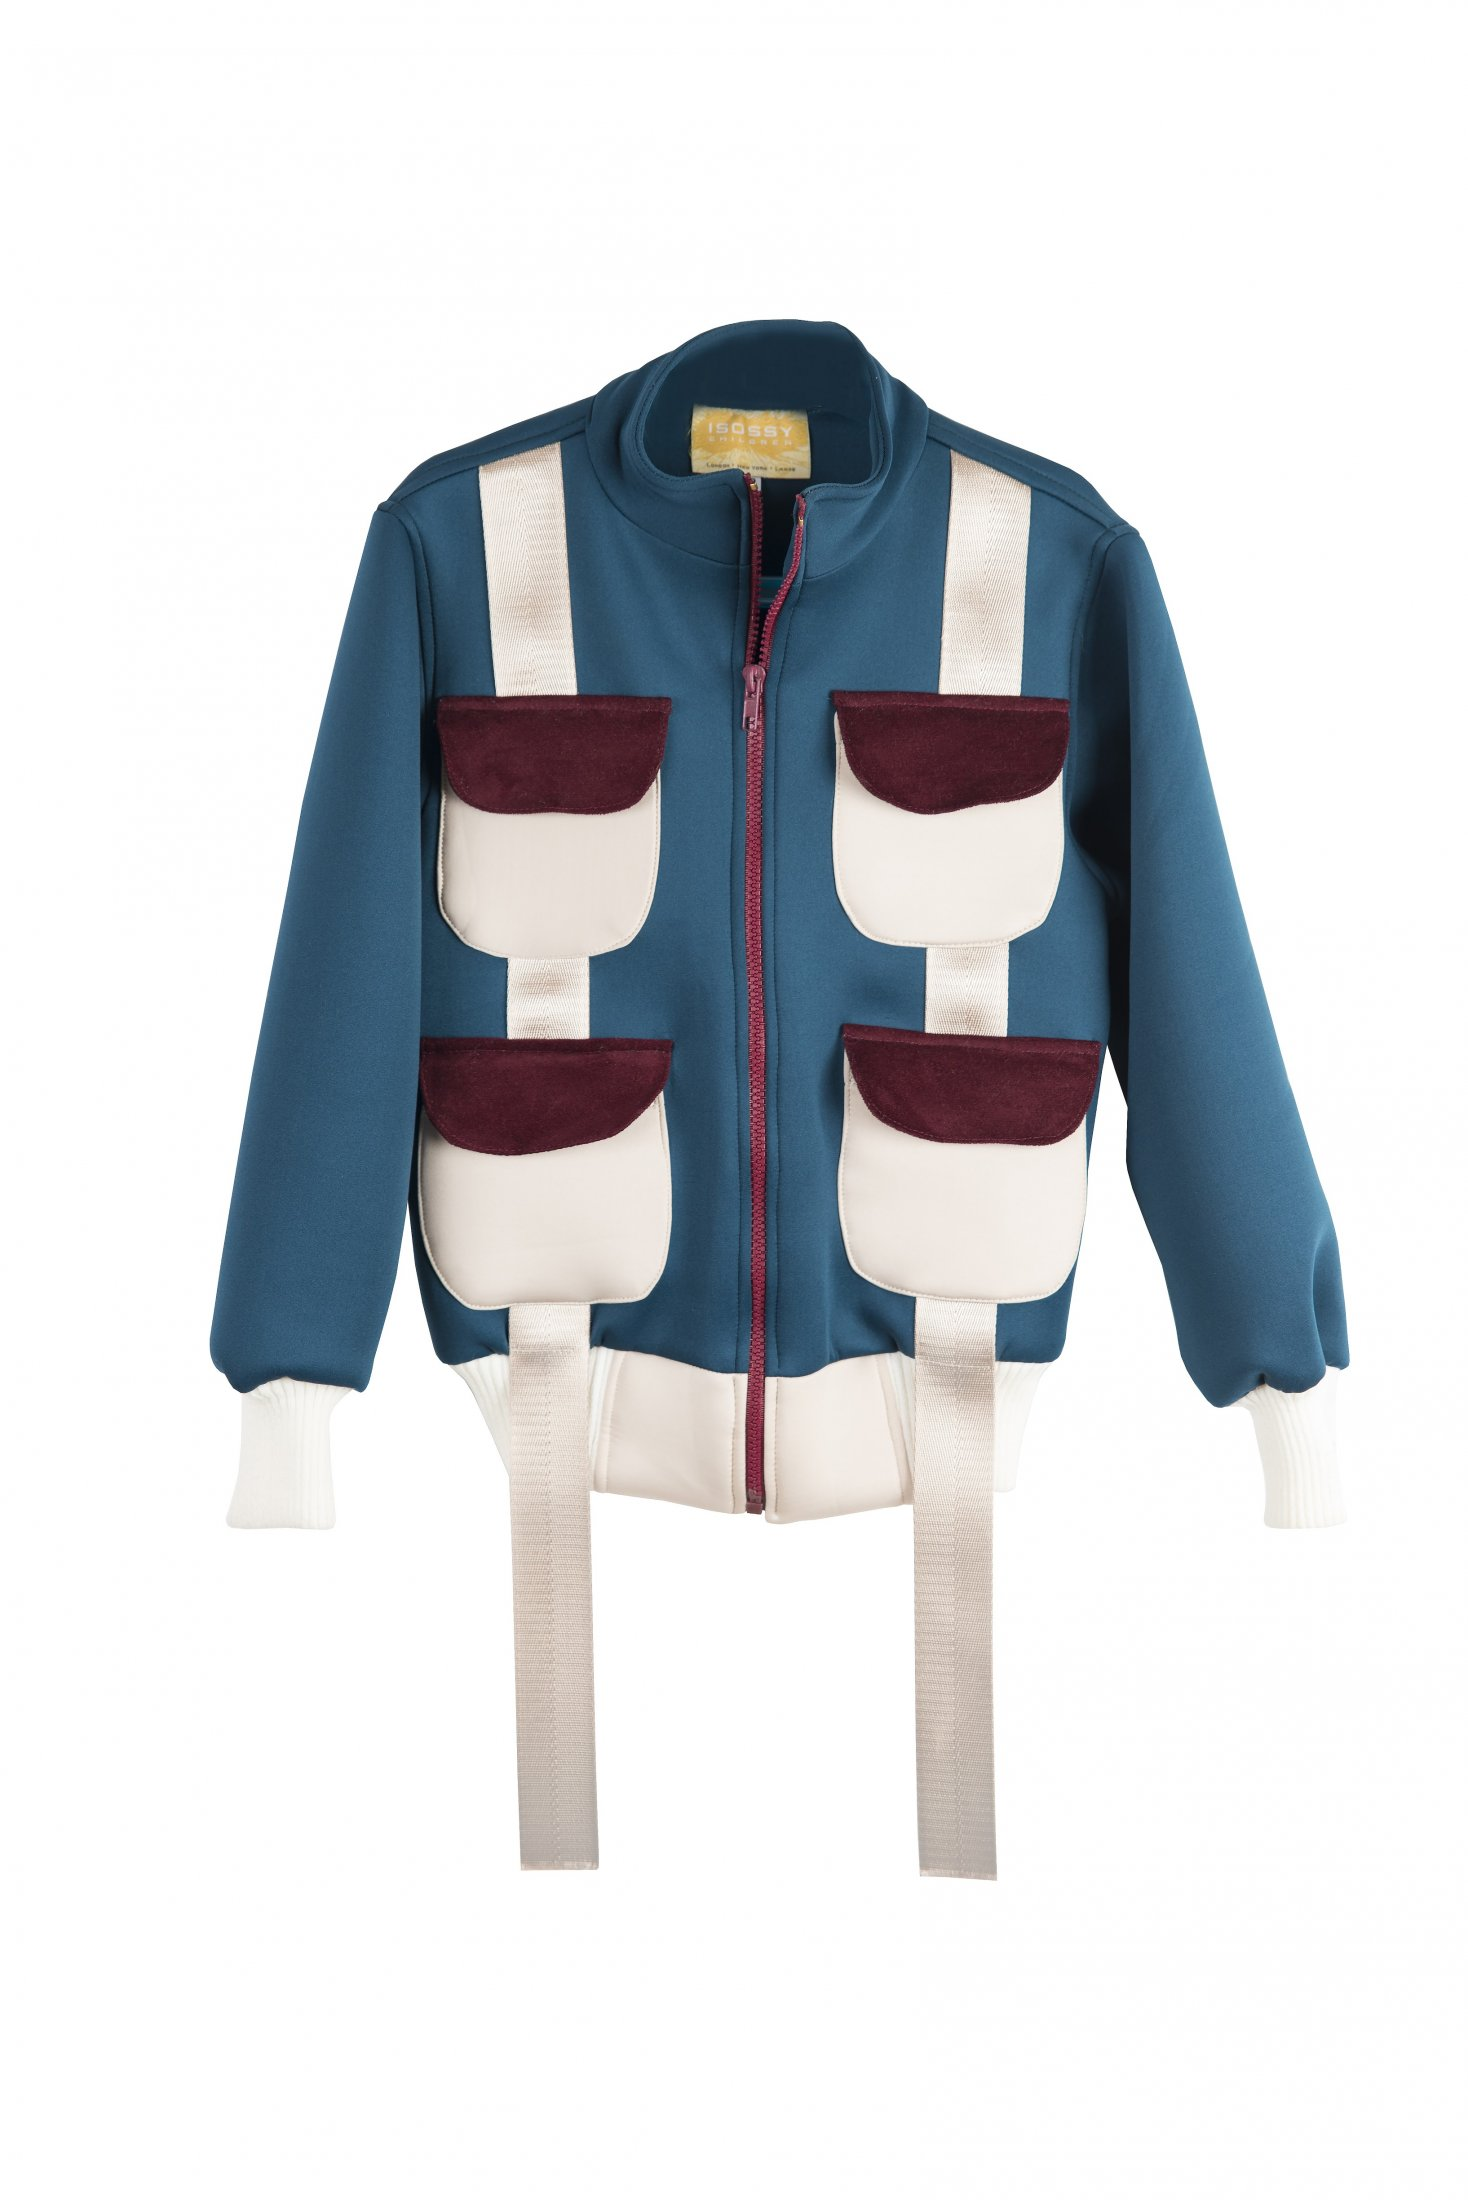 Children Pocket Teal Scuba Jacket £95